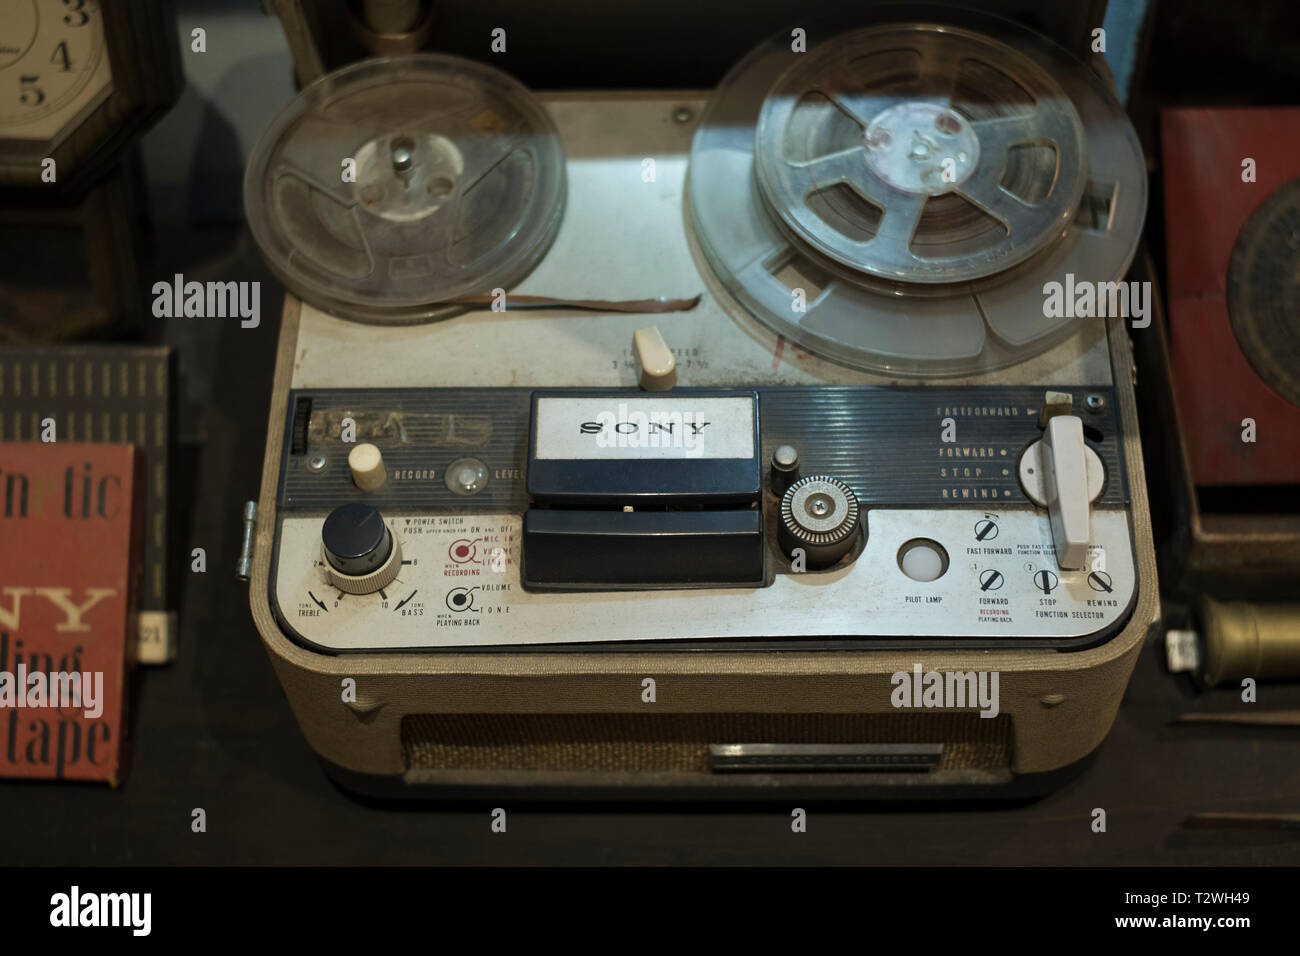 An old Reel-to-Reel Sony Tape Recorder on display at Phuket Taihua Museum,  a museum of The overseas Chinese in Phuket, Thailand. - Stock Image